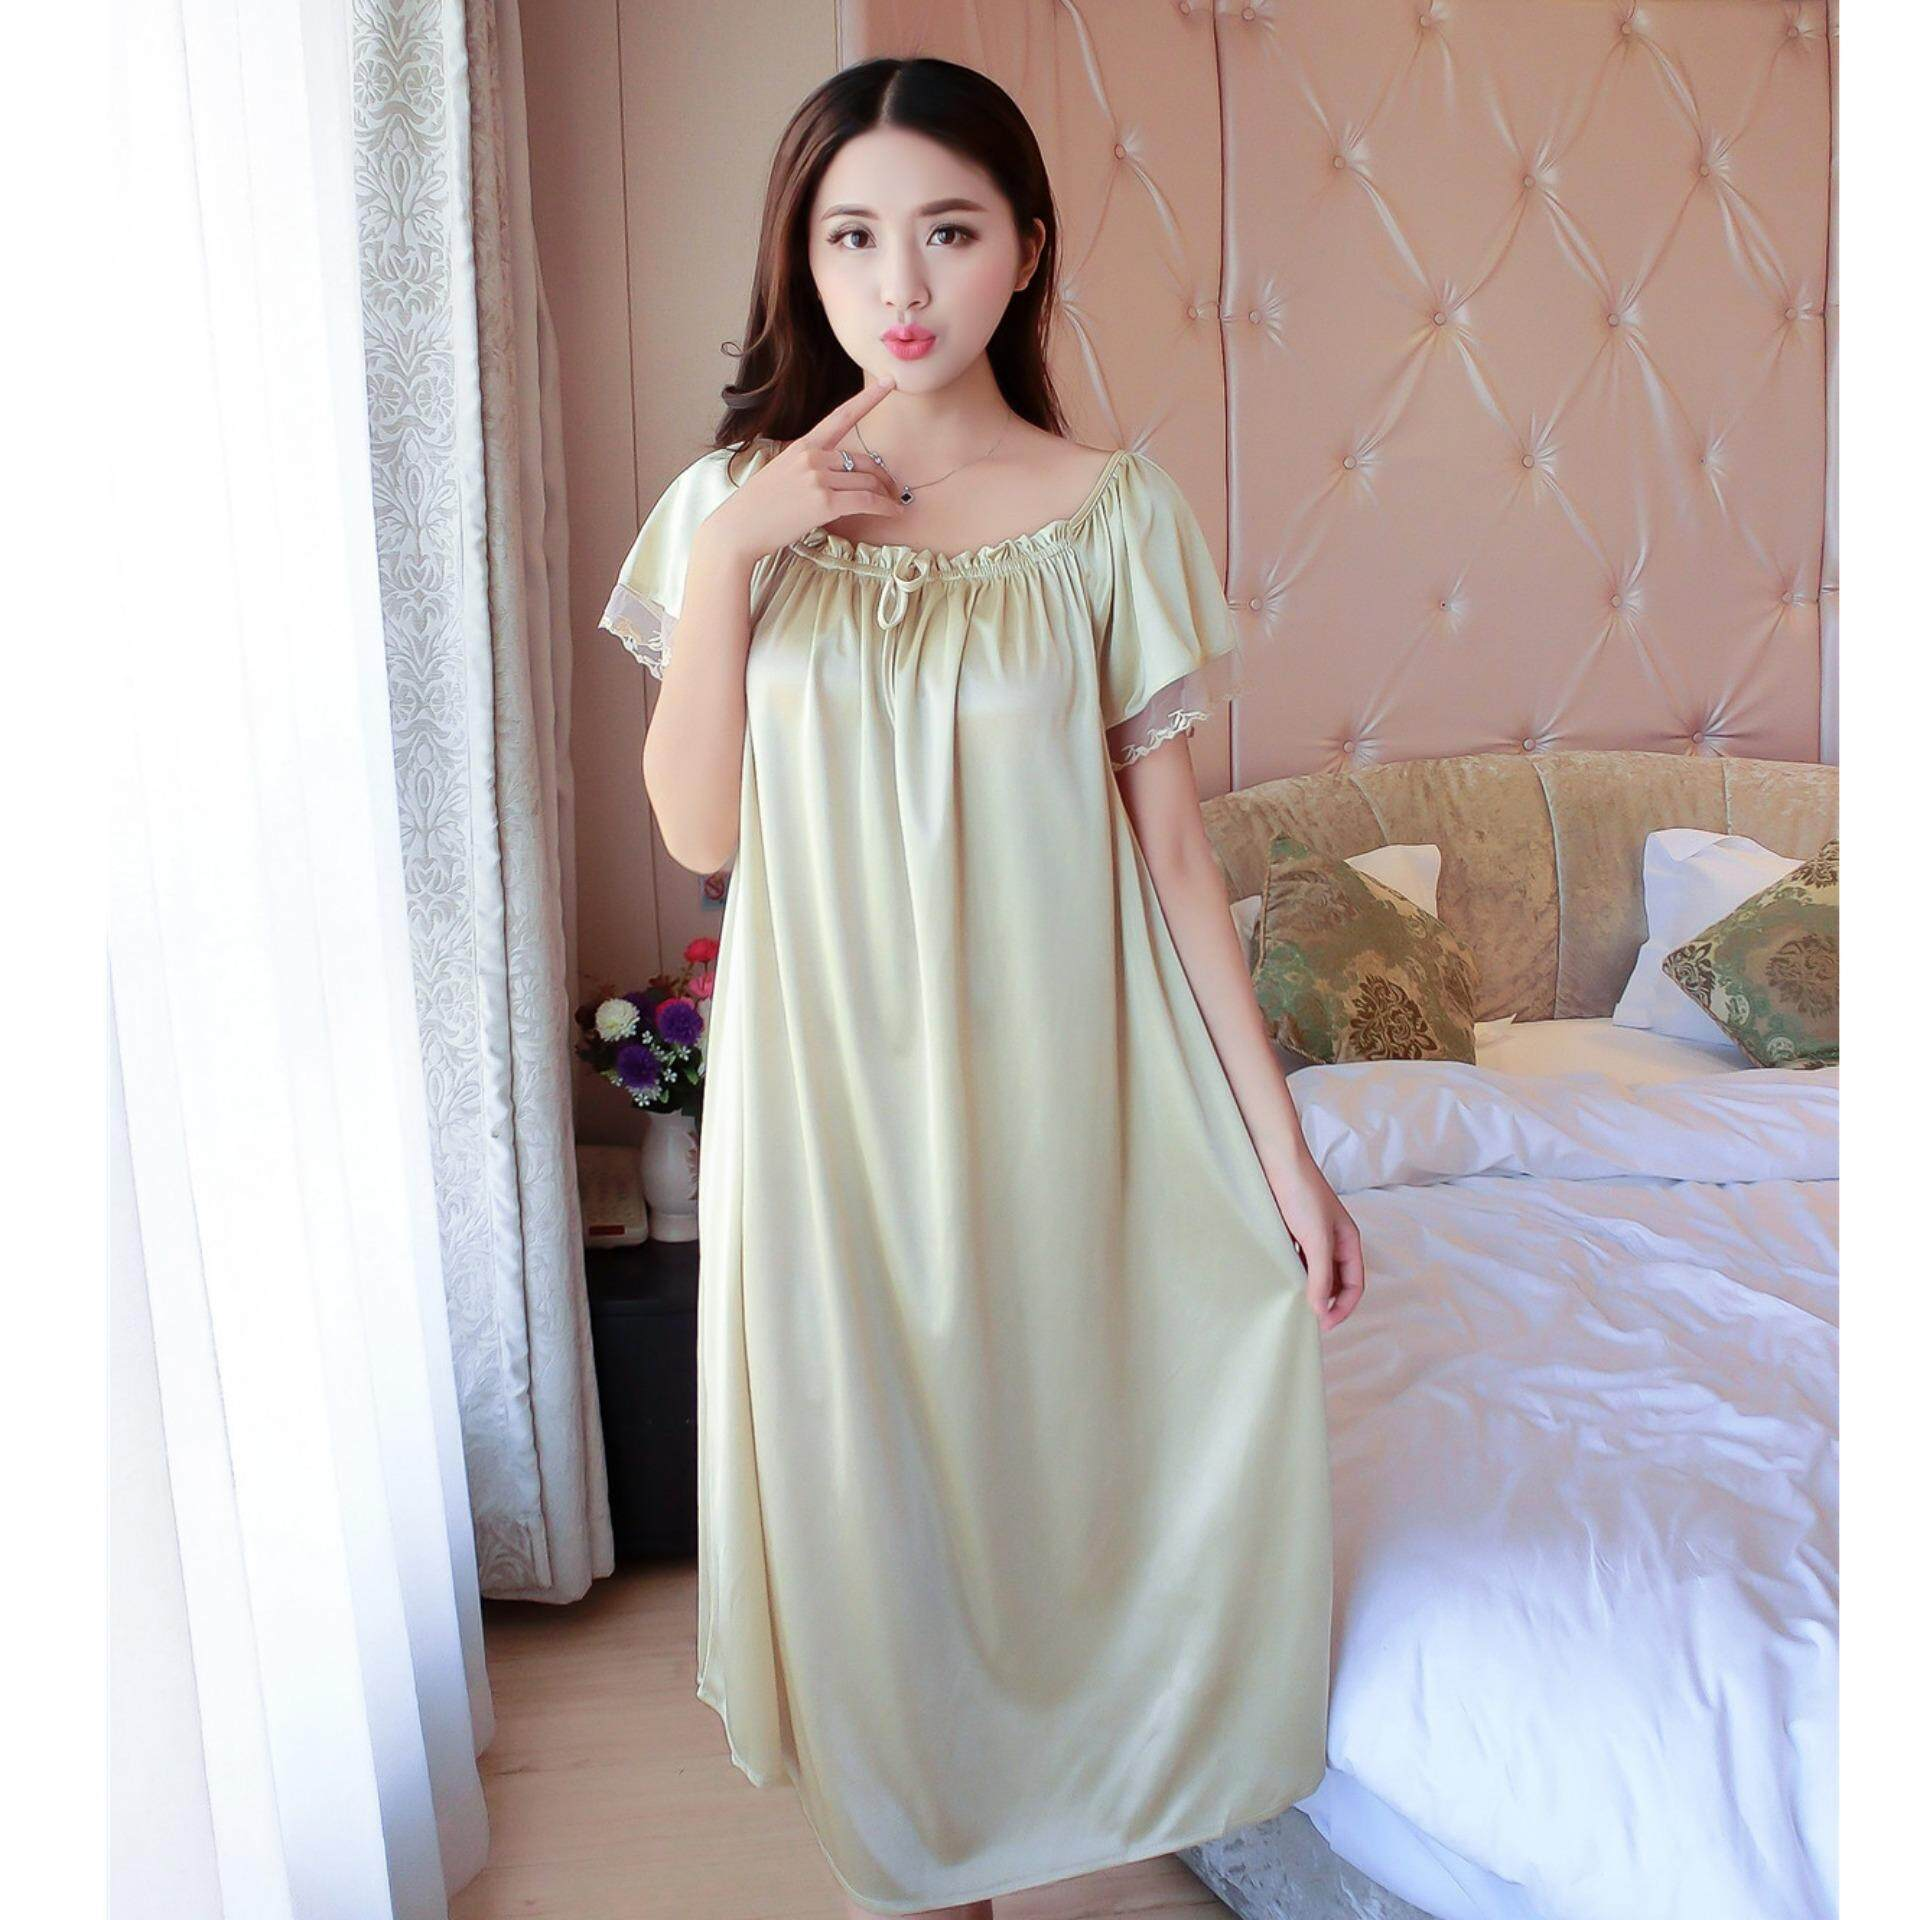 Bolster Store Ladies Women Sleepwear Sexy Lingerie Pajamas Long Dress Skirt With Sleeve Satin Comfortable Wear (Champagne)